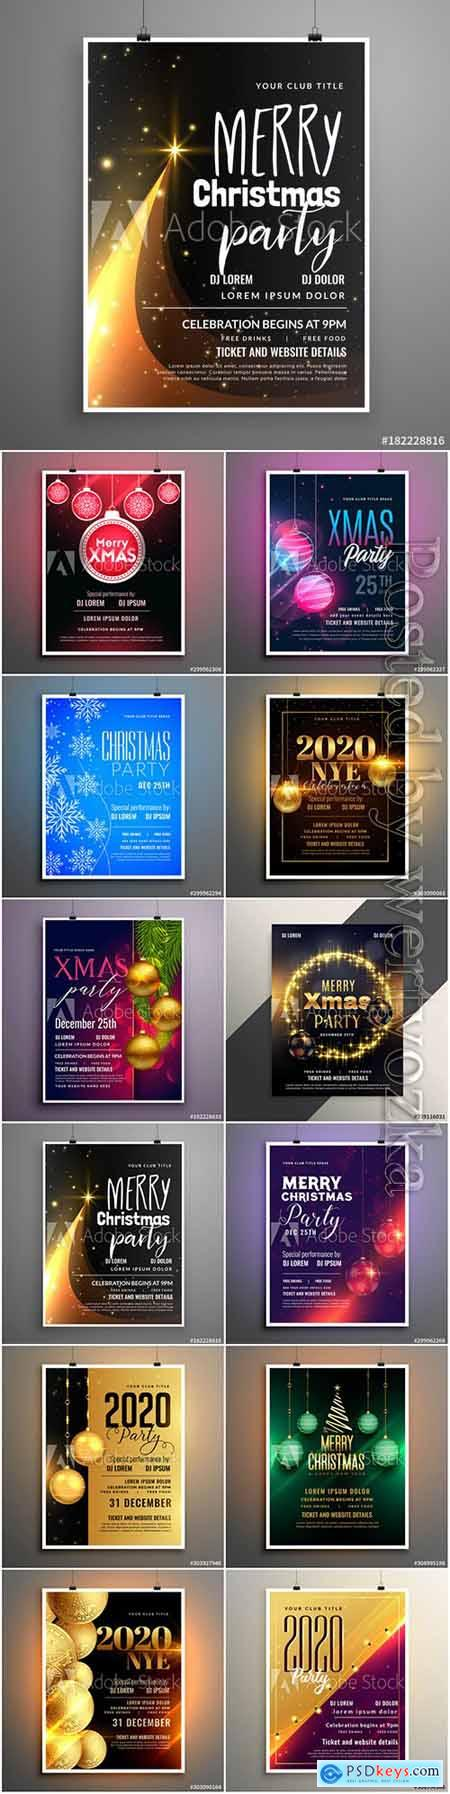 Stylish 2020 new year cover flyer template design